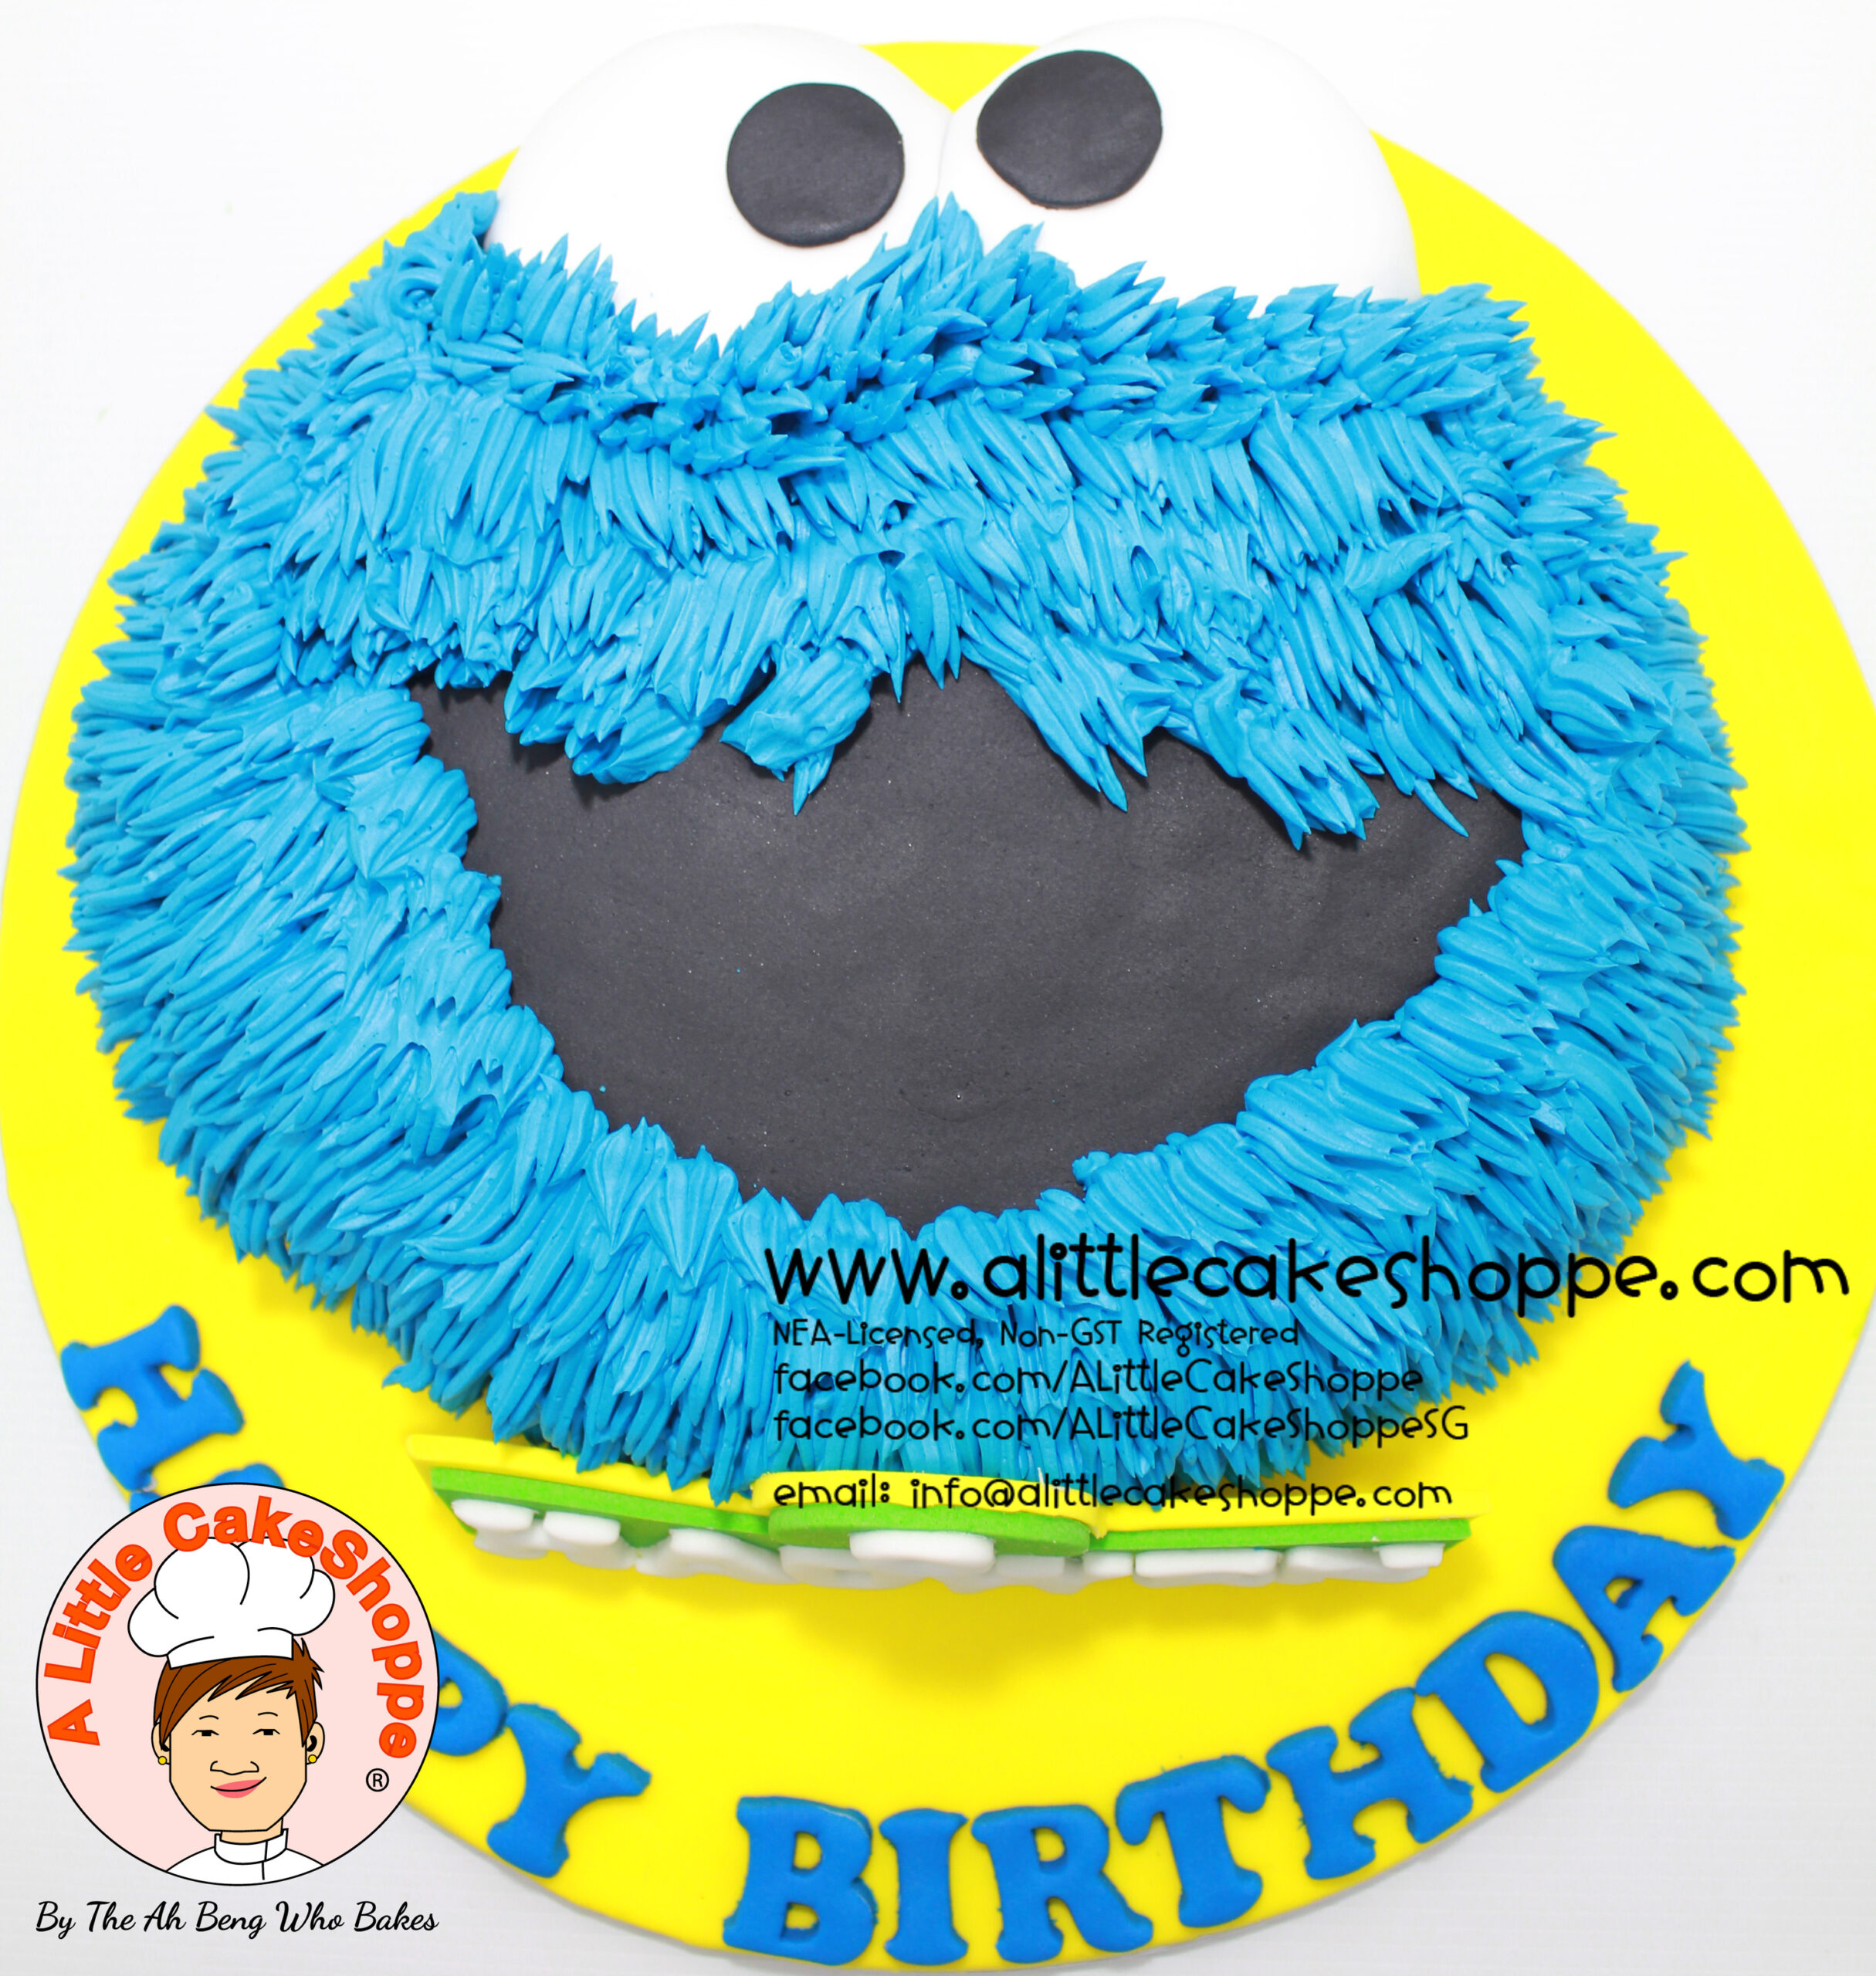 Best Customised Cake Shop Singapore custom cake 2D 3D birthday cake cupcakes desserts wedding corporate events anniversary 1st birthday 21st birthday fondant fresh cream buttercream cakes alittlecakeshoppe a little cake shoppe compliments review singapore bakers SG cake shop cakeshop ah beng who bakes sesame street elmo cookie monster